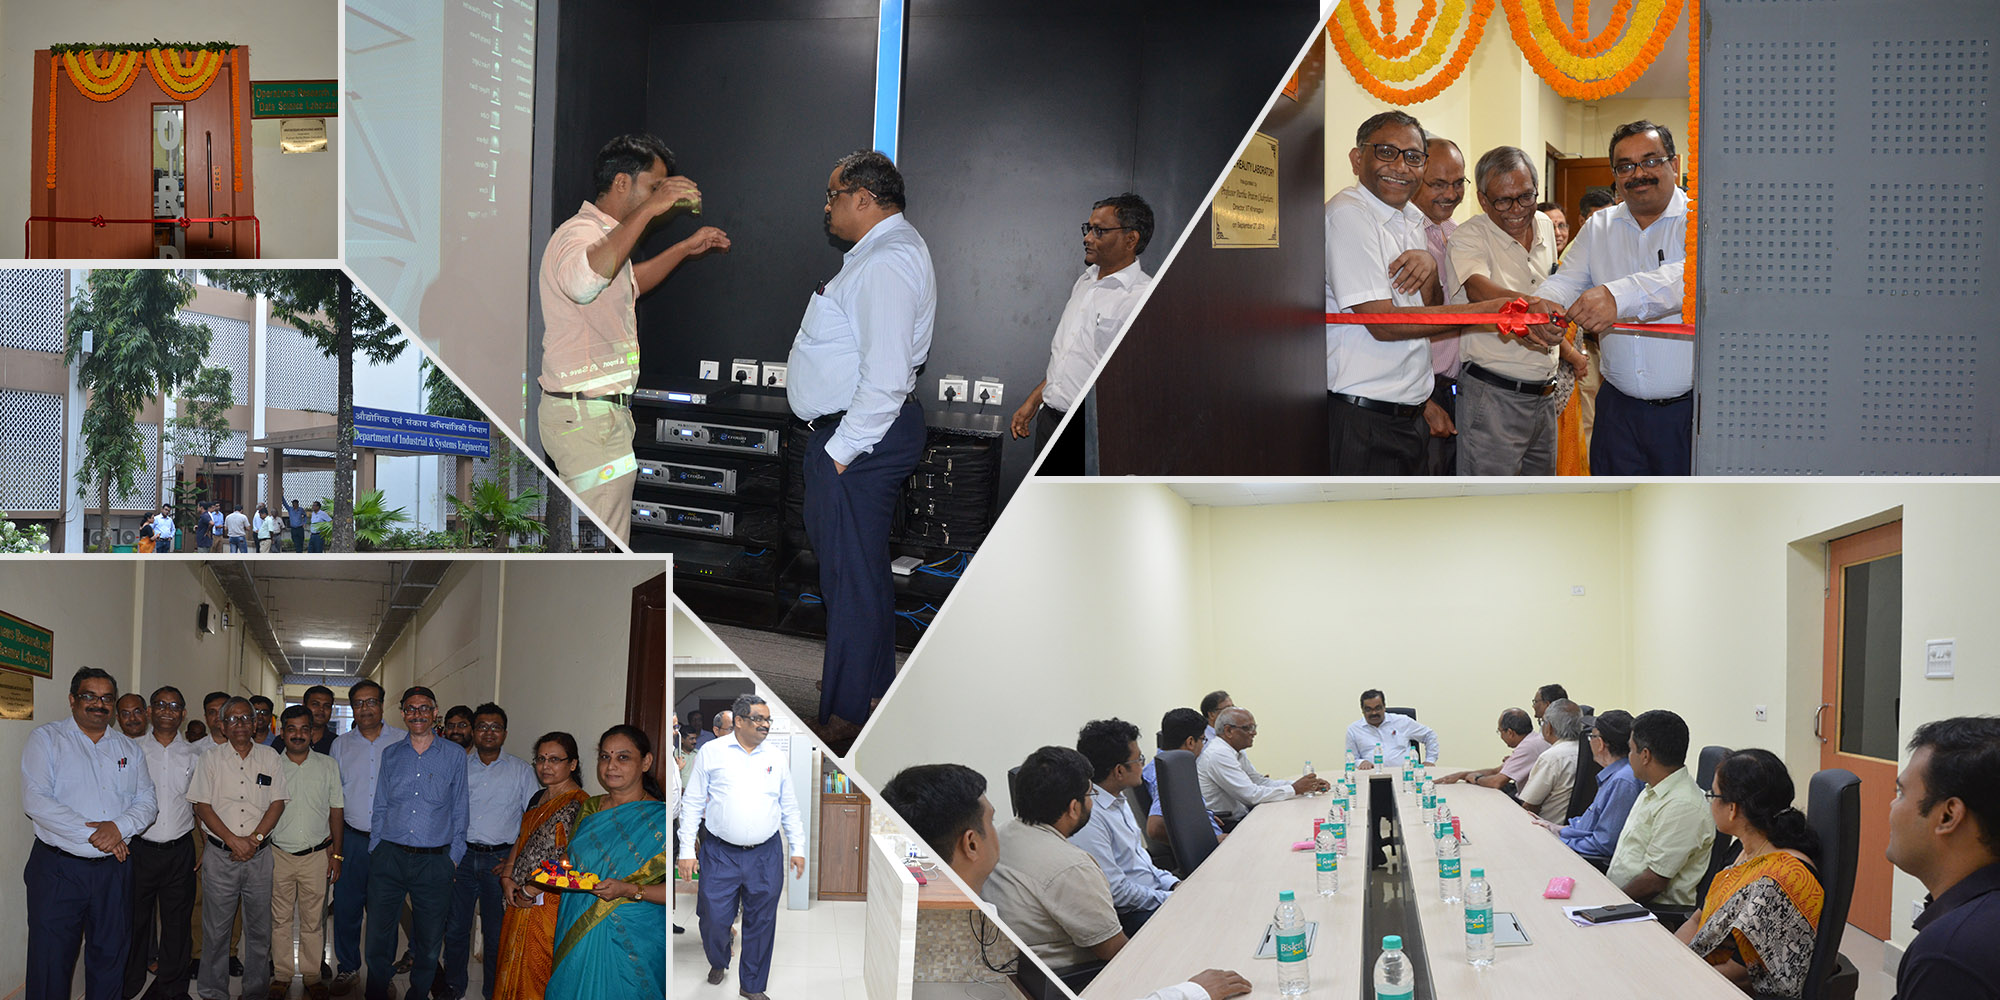 The Industrial and Systems Engineering Department gets a slew of new facilities and laboratories